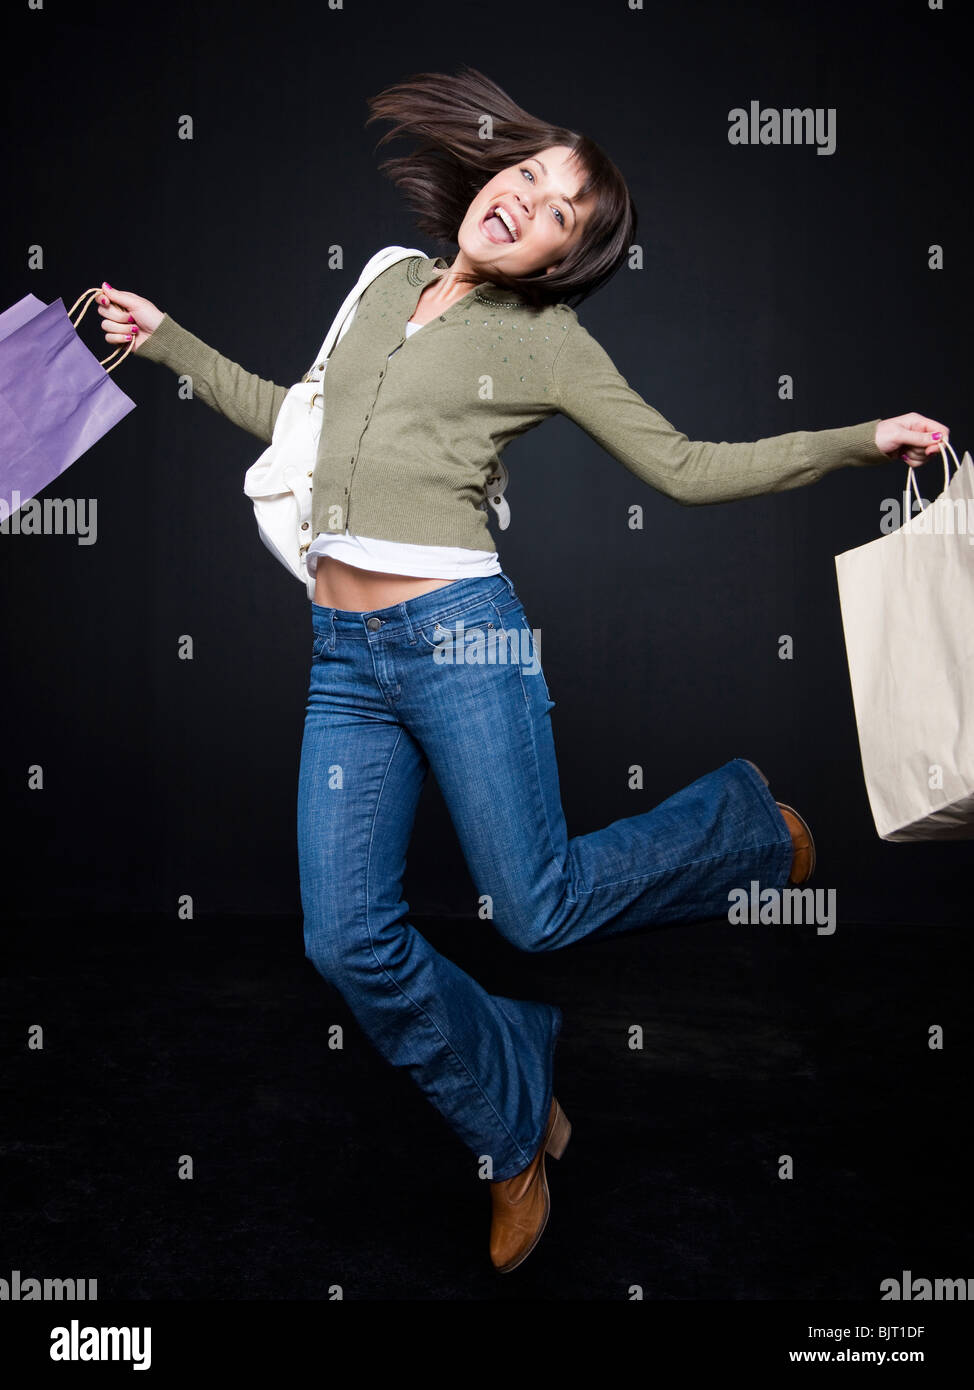 Young woman with shopping bags jumping, studio shot - Stock Image